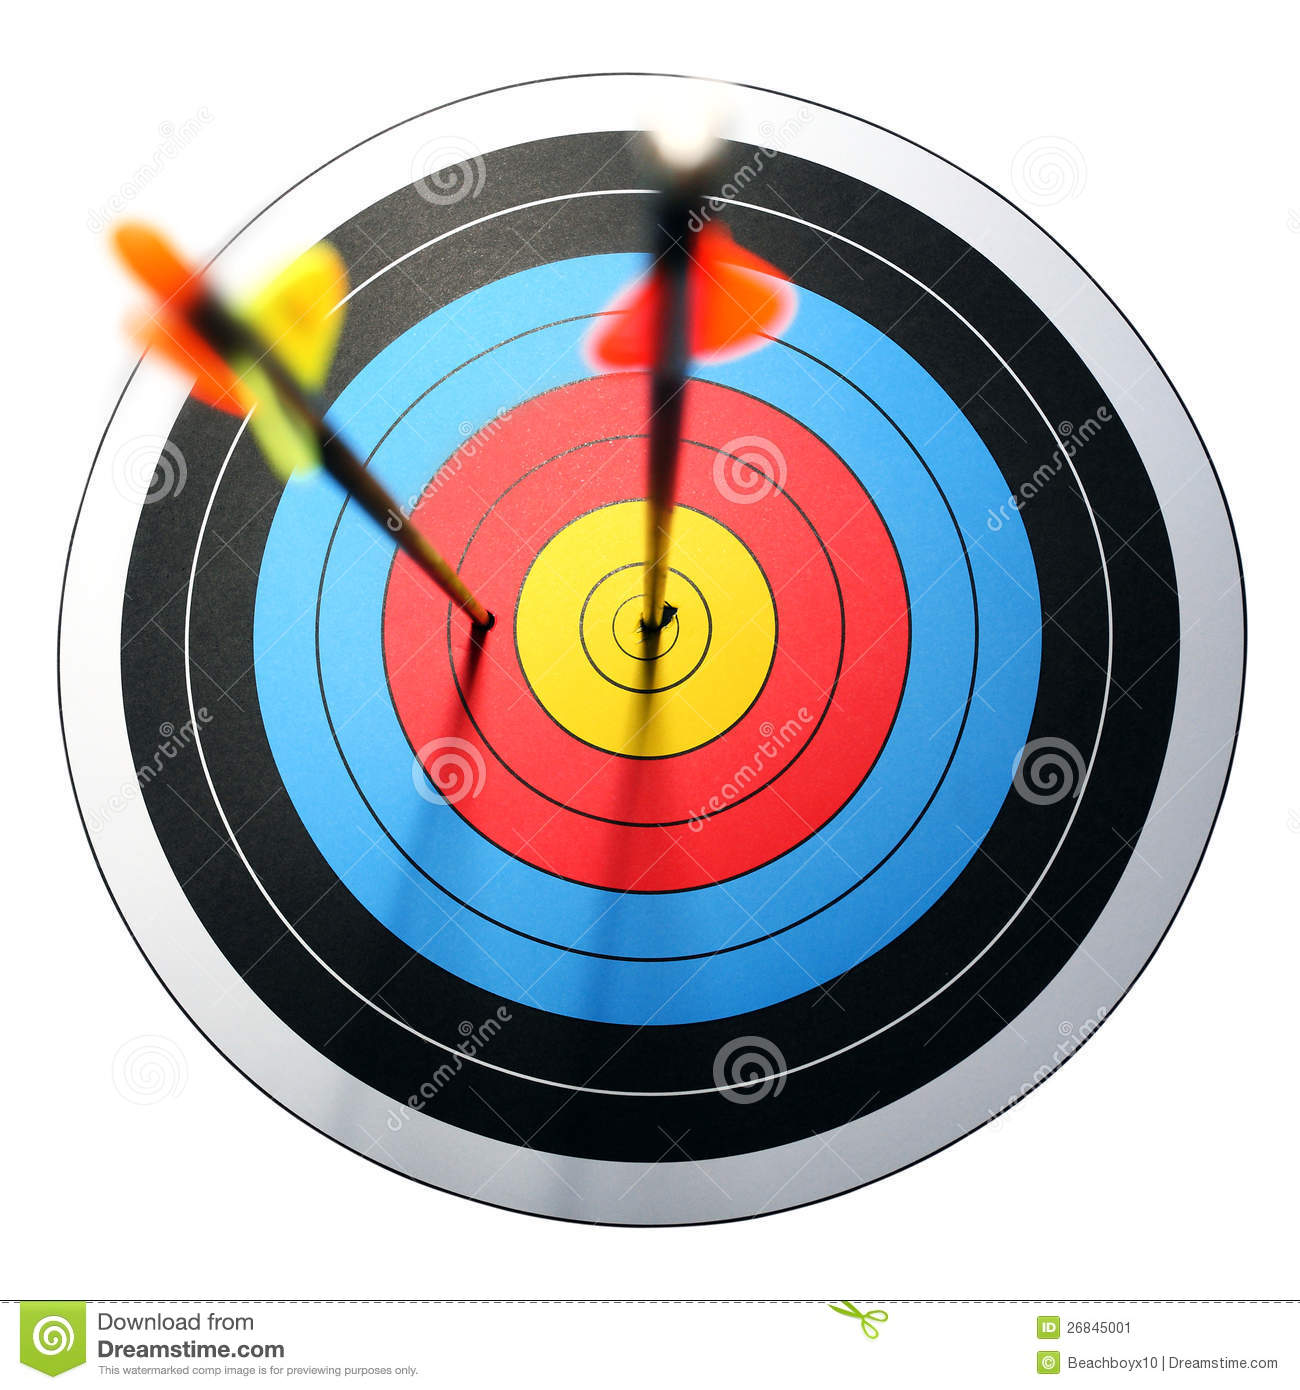 Arrow hitting target clipart png freeuse library Arrow hitting target clipart - ClipartFest png freeuse library